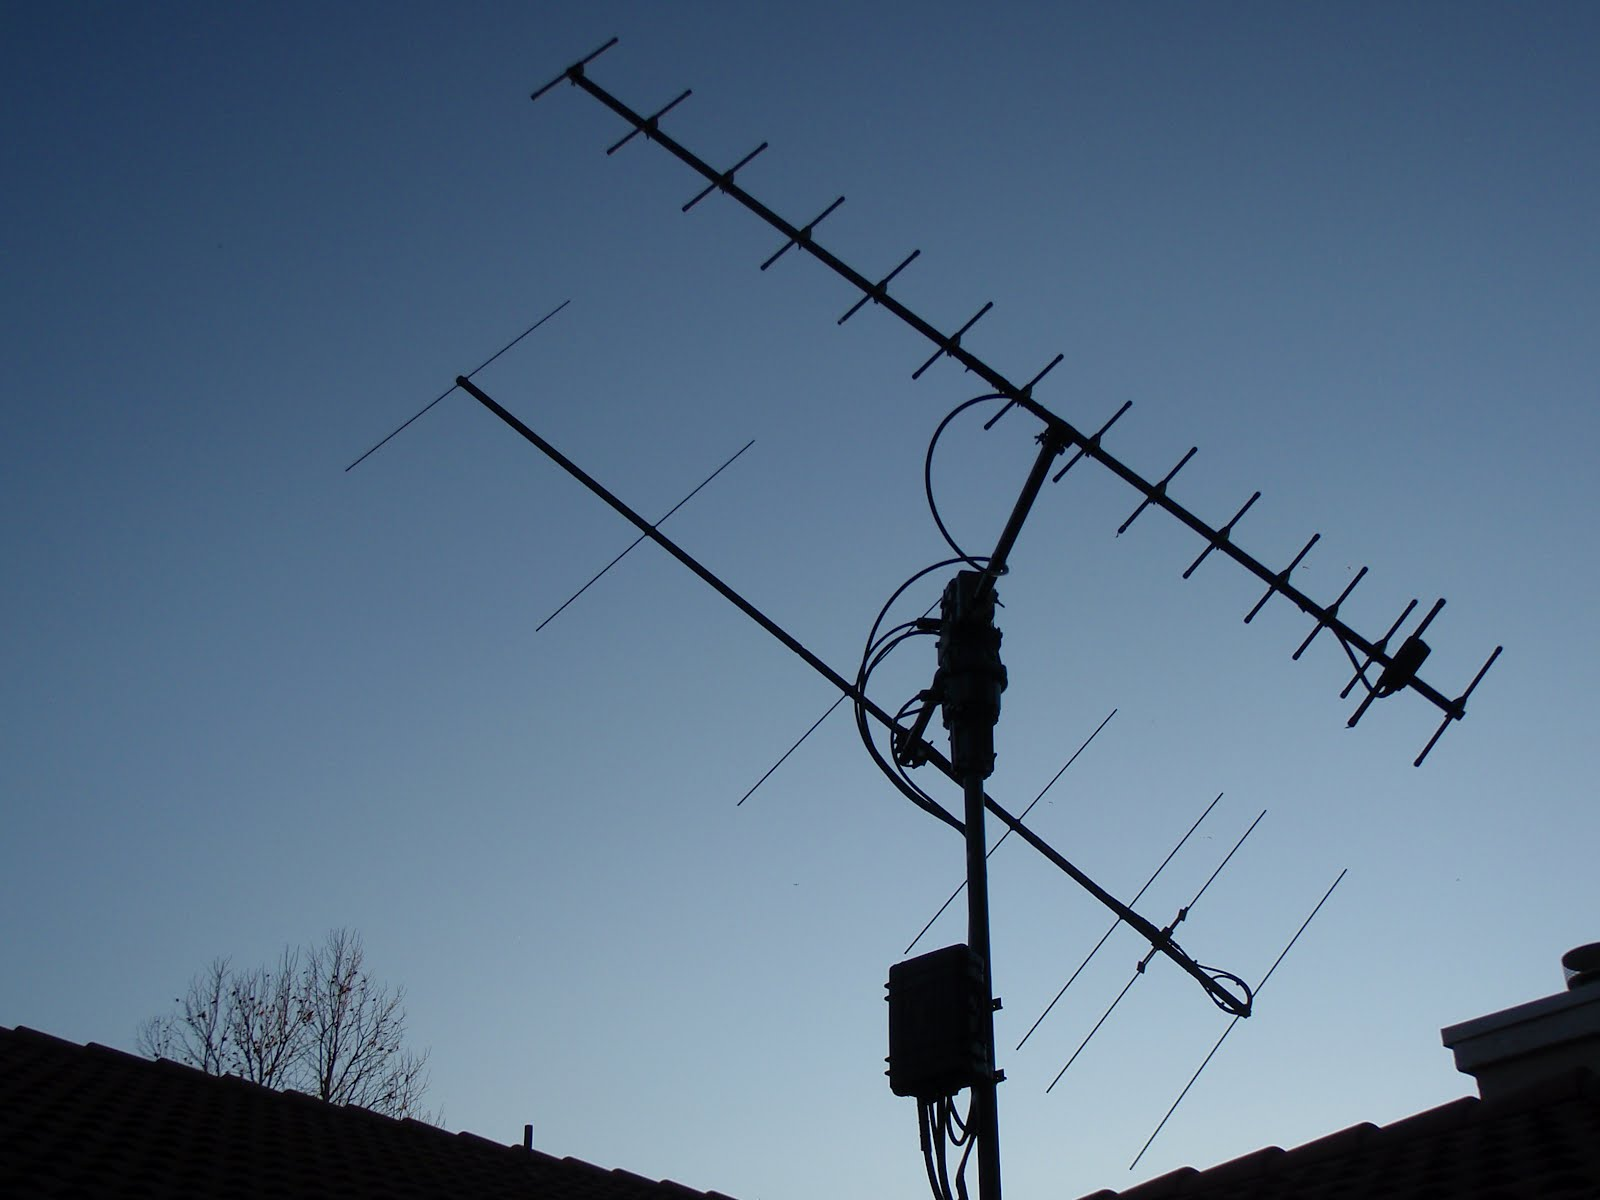 Words... Amateur antenna system opinion